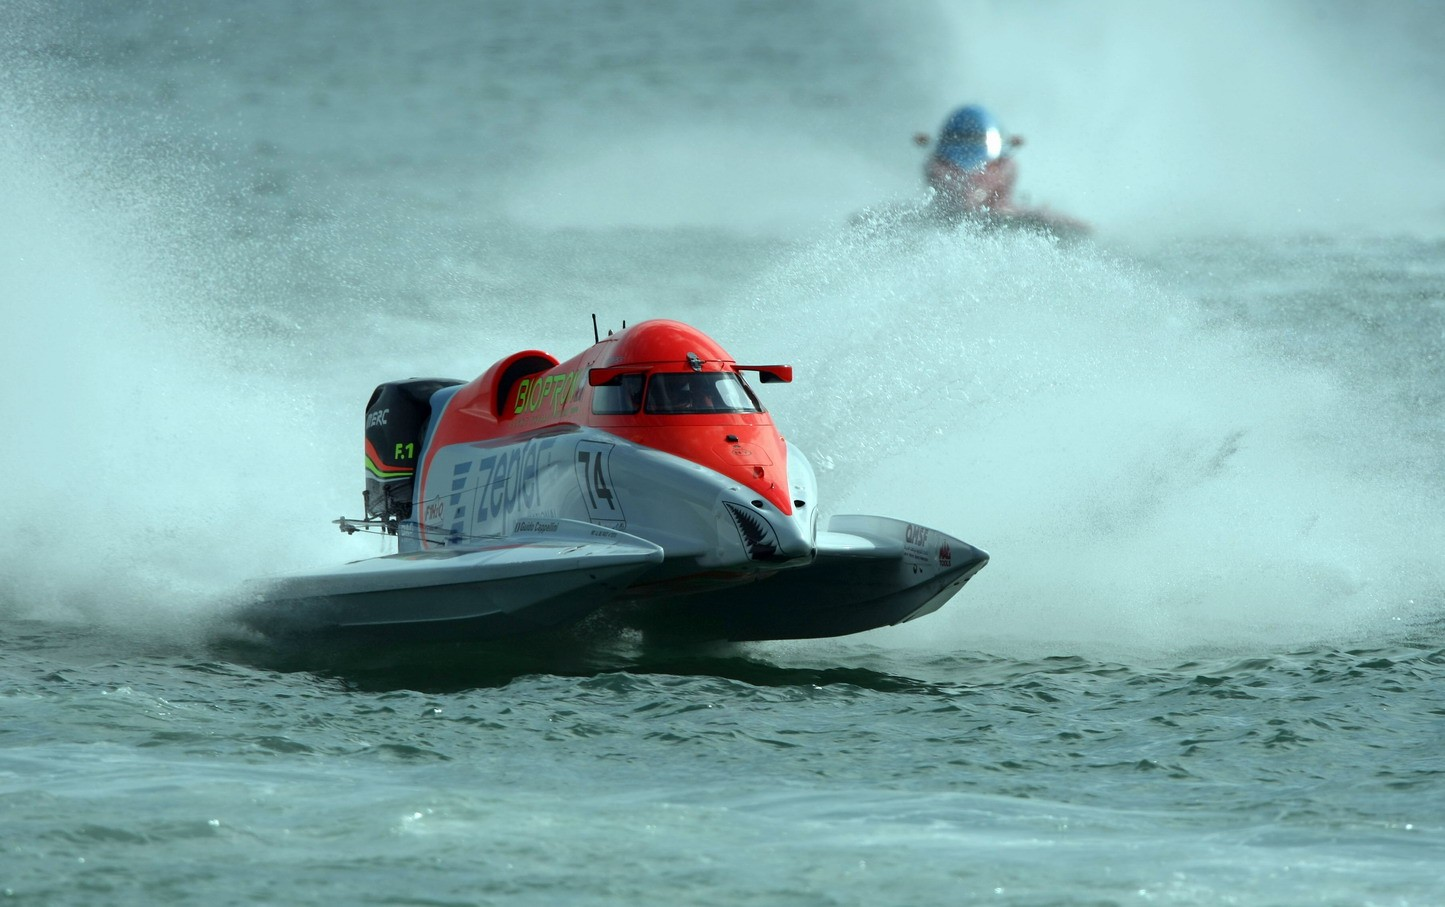 GP OF QATAR-281109-Guido Cappellini of Italy of the Zepter team in action for the UIM F1 Powerboat Grand Prix of Qatar, on the Doha Corniche, Doha, Qatar, the race days are November 27-28, 2009. Picture by Paul Lakatos/Idea Marketing.